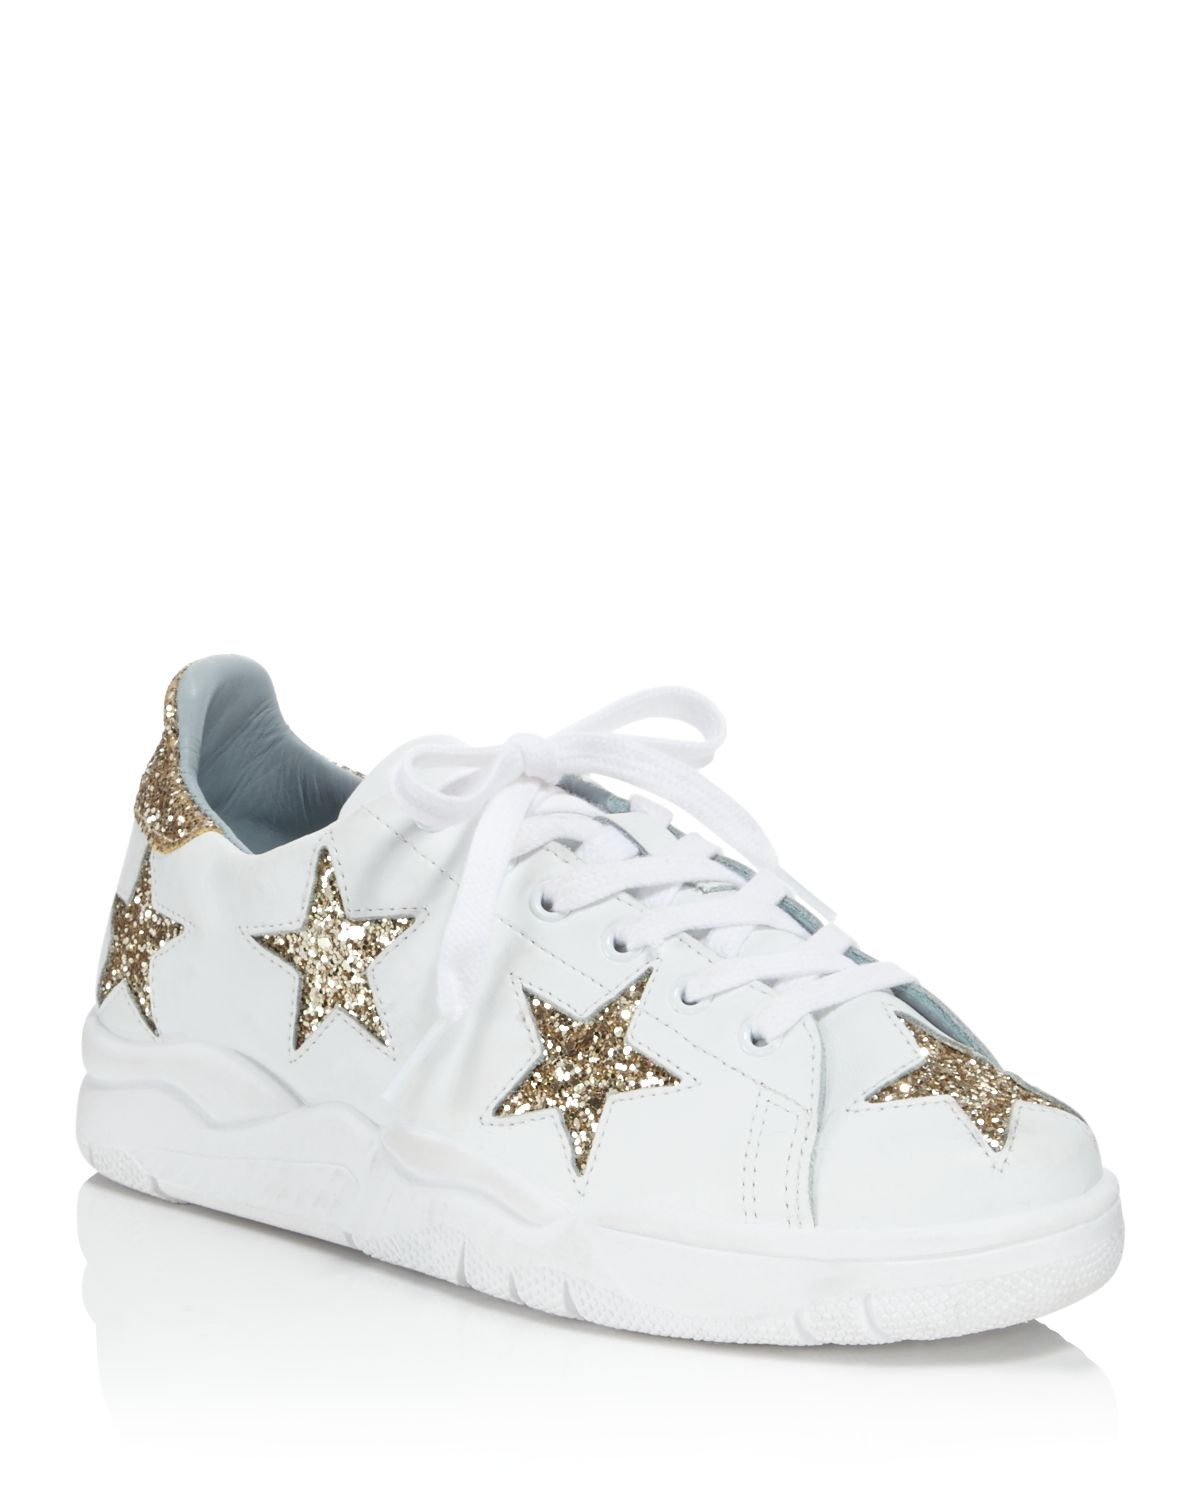 Chiara Ferragni Leather & Glitter Star Low Top Lace Up Sneakers